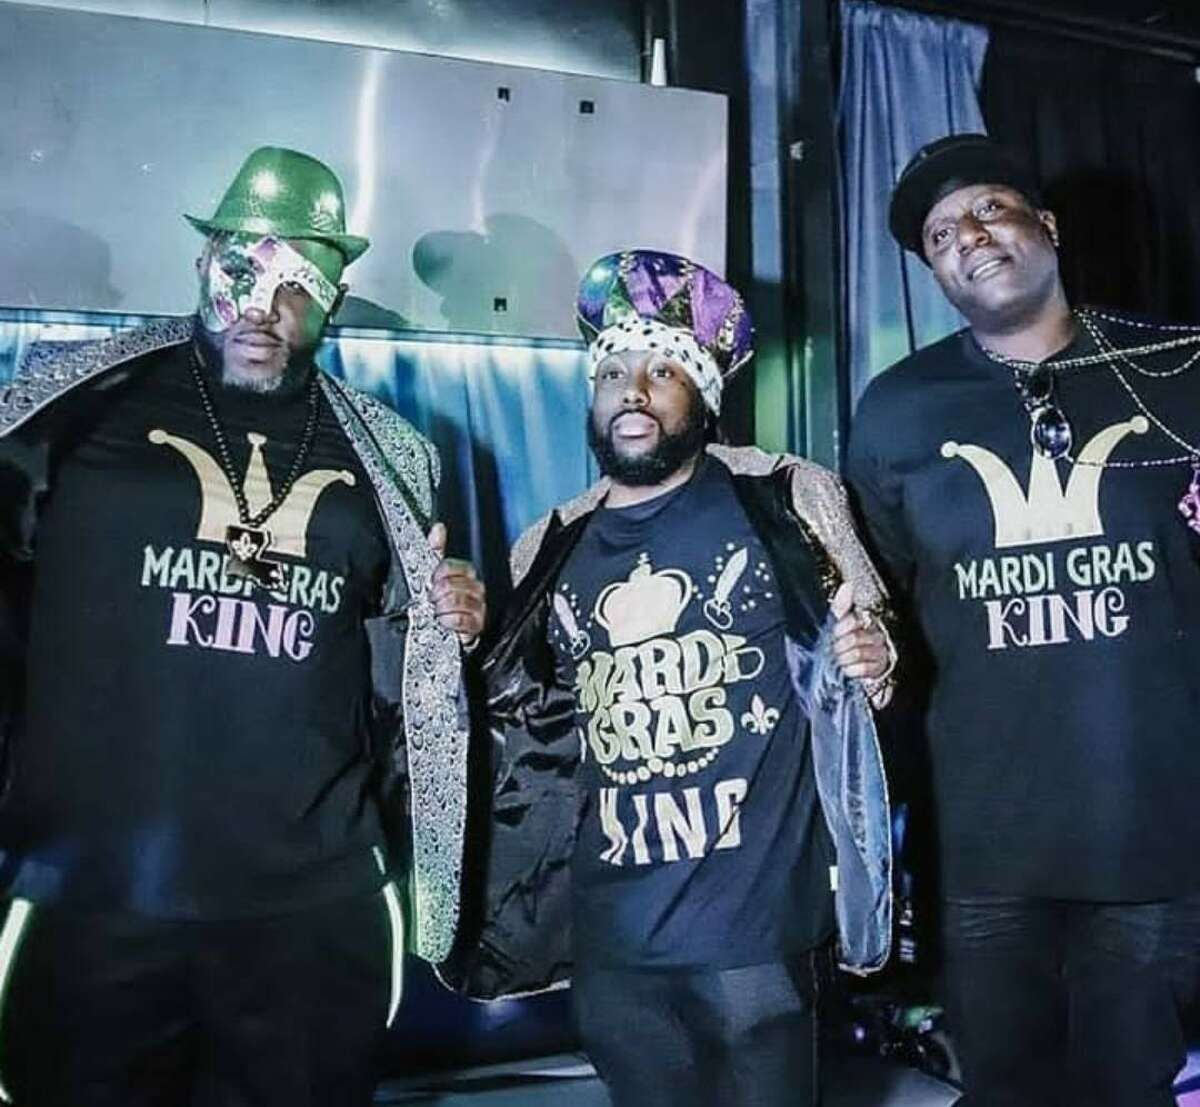 Through Who Dat Nation of San Antonio, a New Orleans Saints fan group, many Louisiana natives can celebrate Mardi Gras authentically, make crawfish boils the